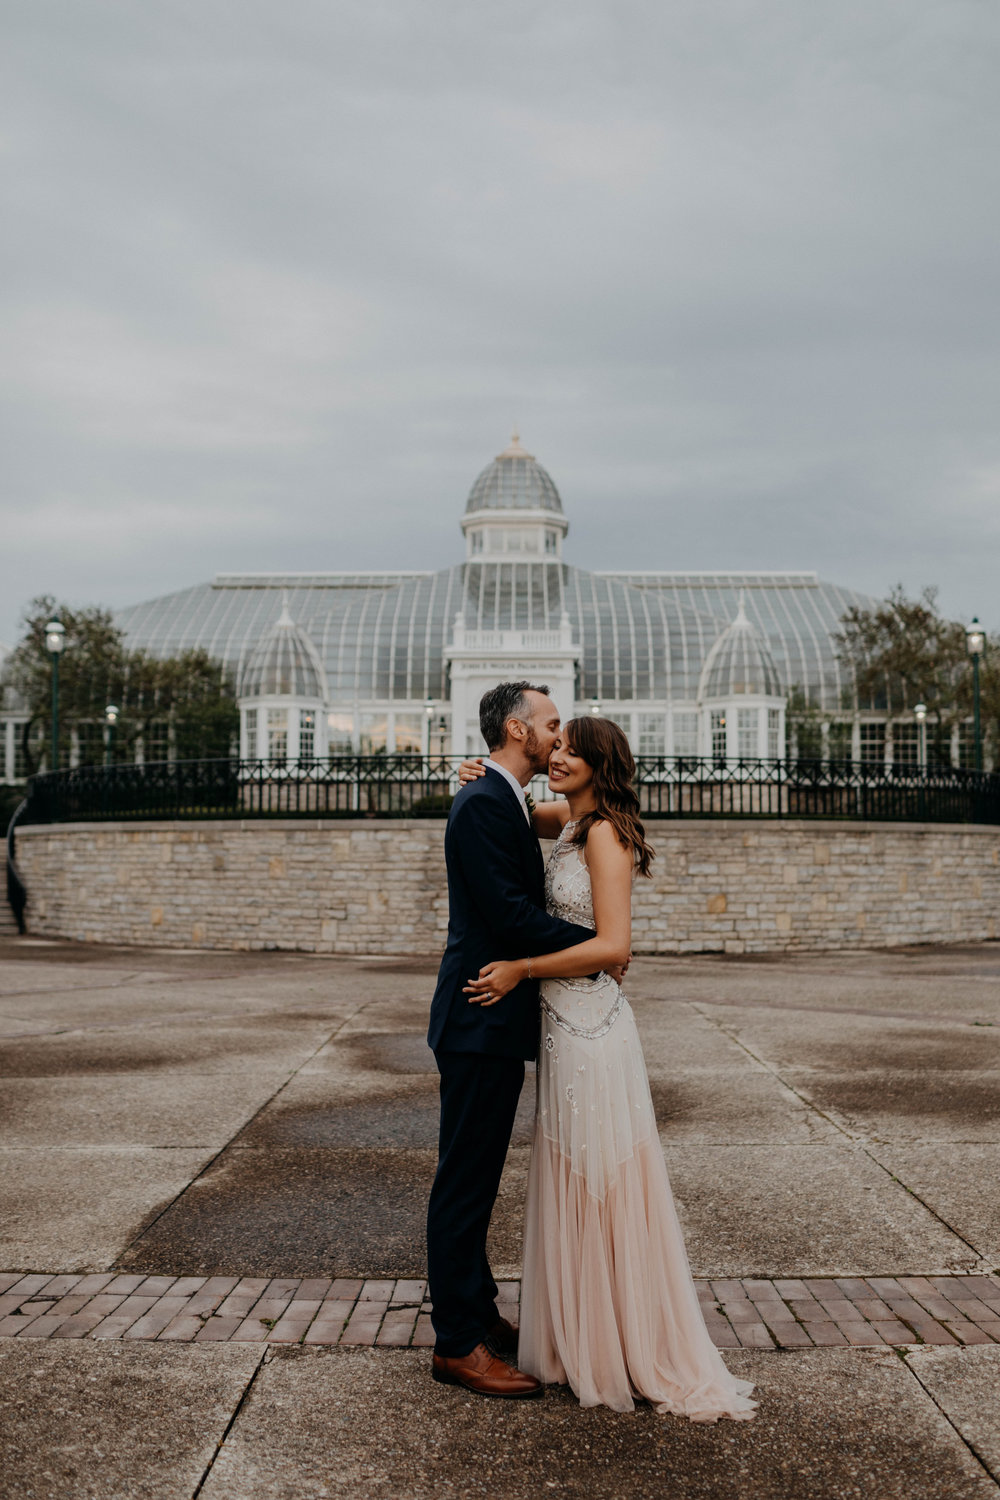 franklin park conservatory wedding columbus ohio wedding photographer grace e jones photography93.jpg